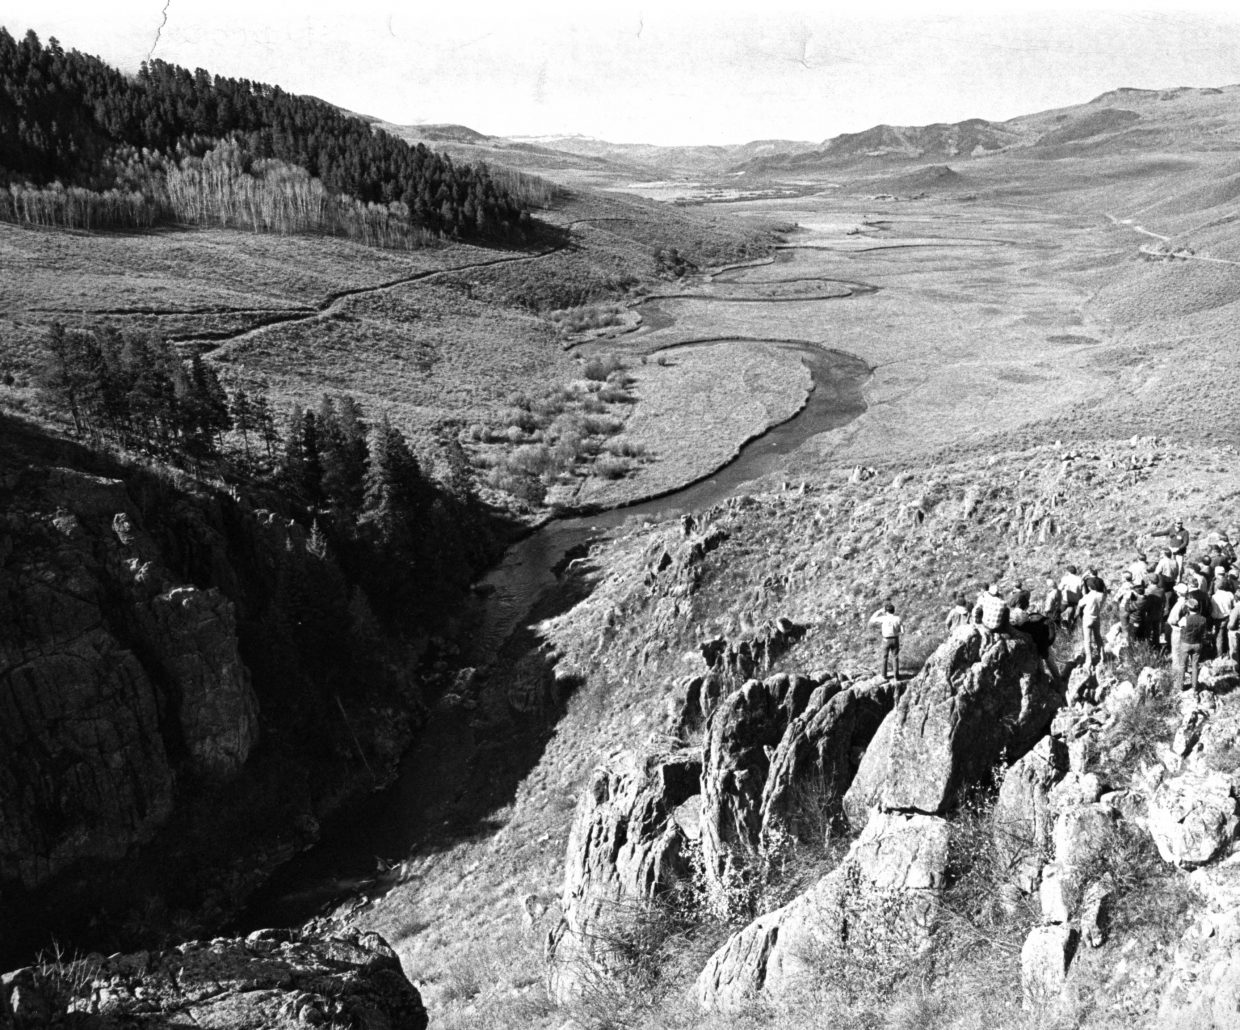 Stagecoach valley in October 1986 before construction of the dam.